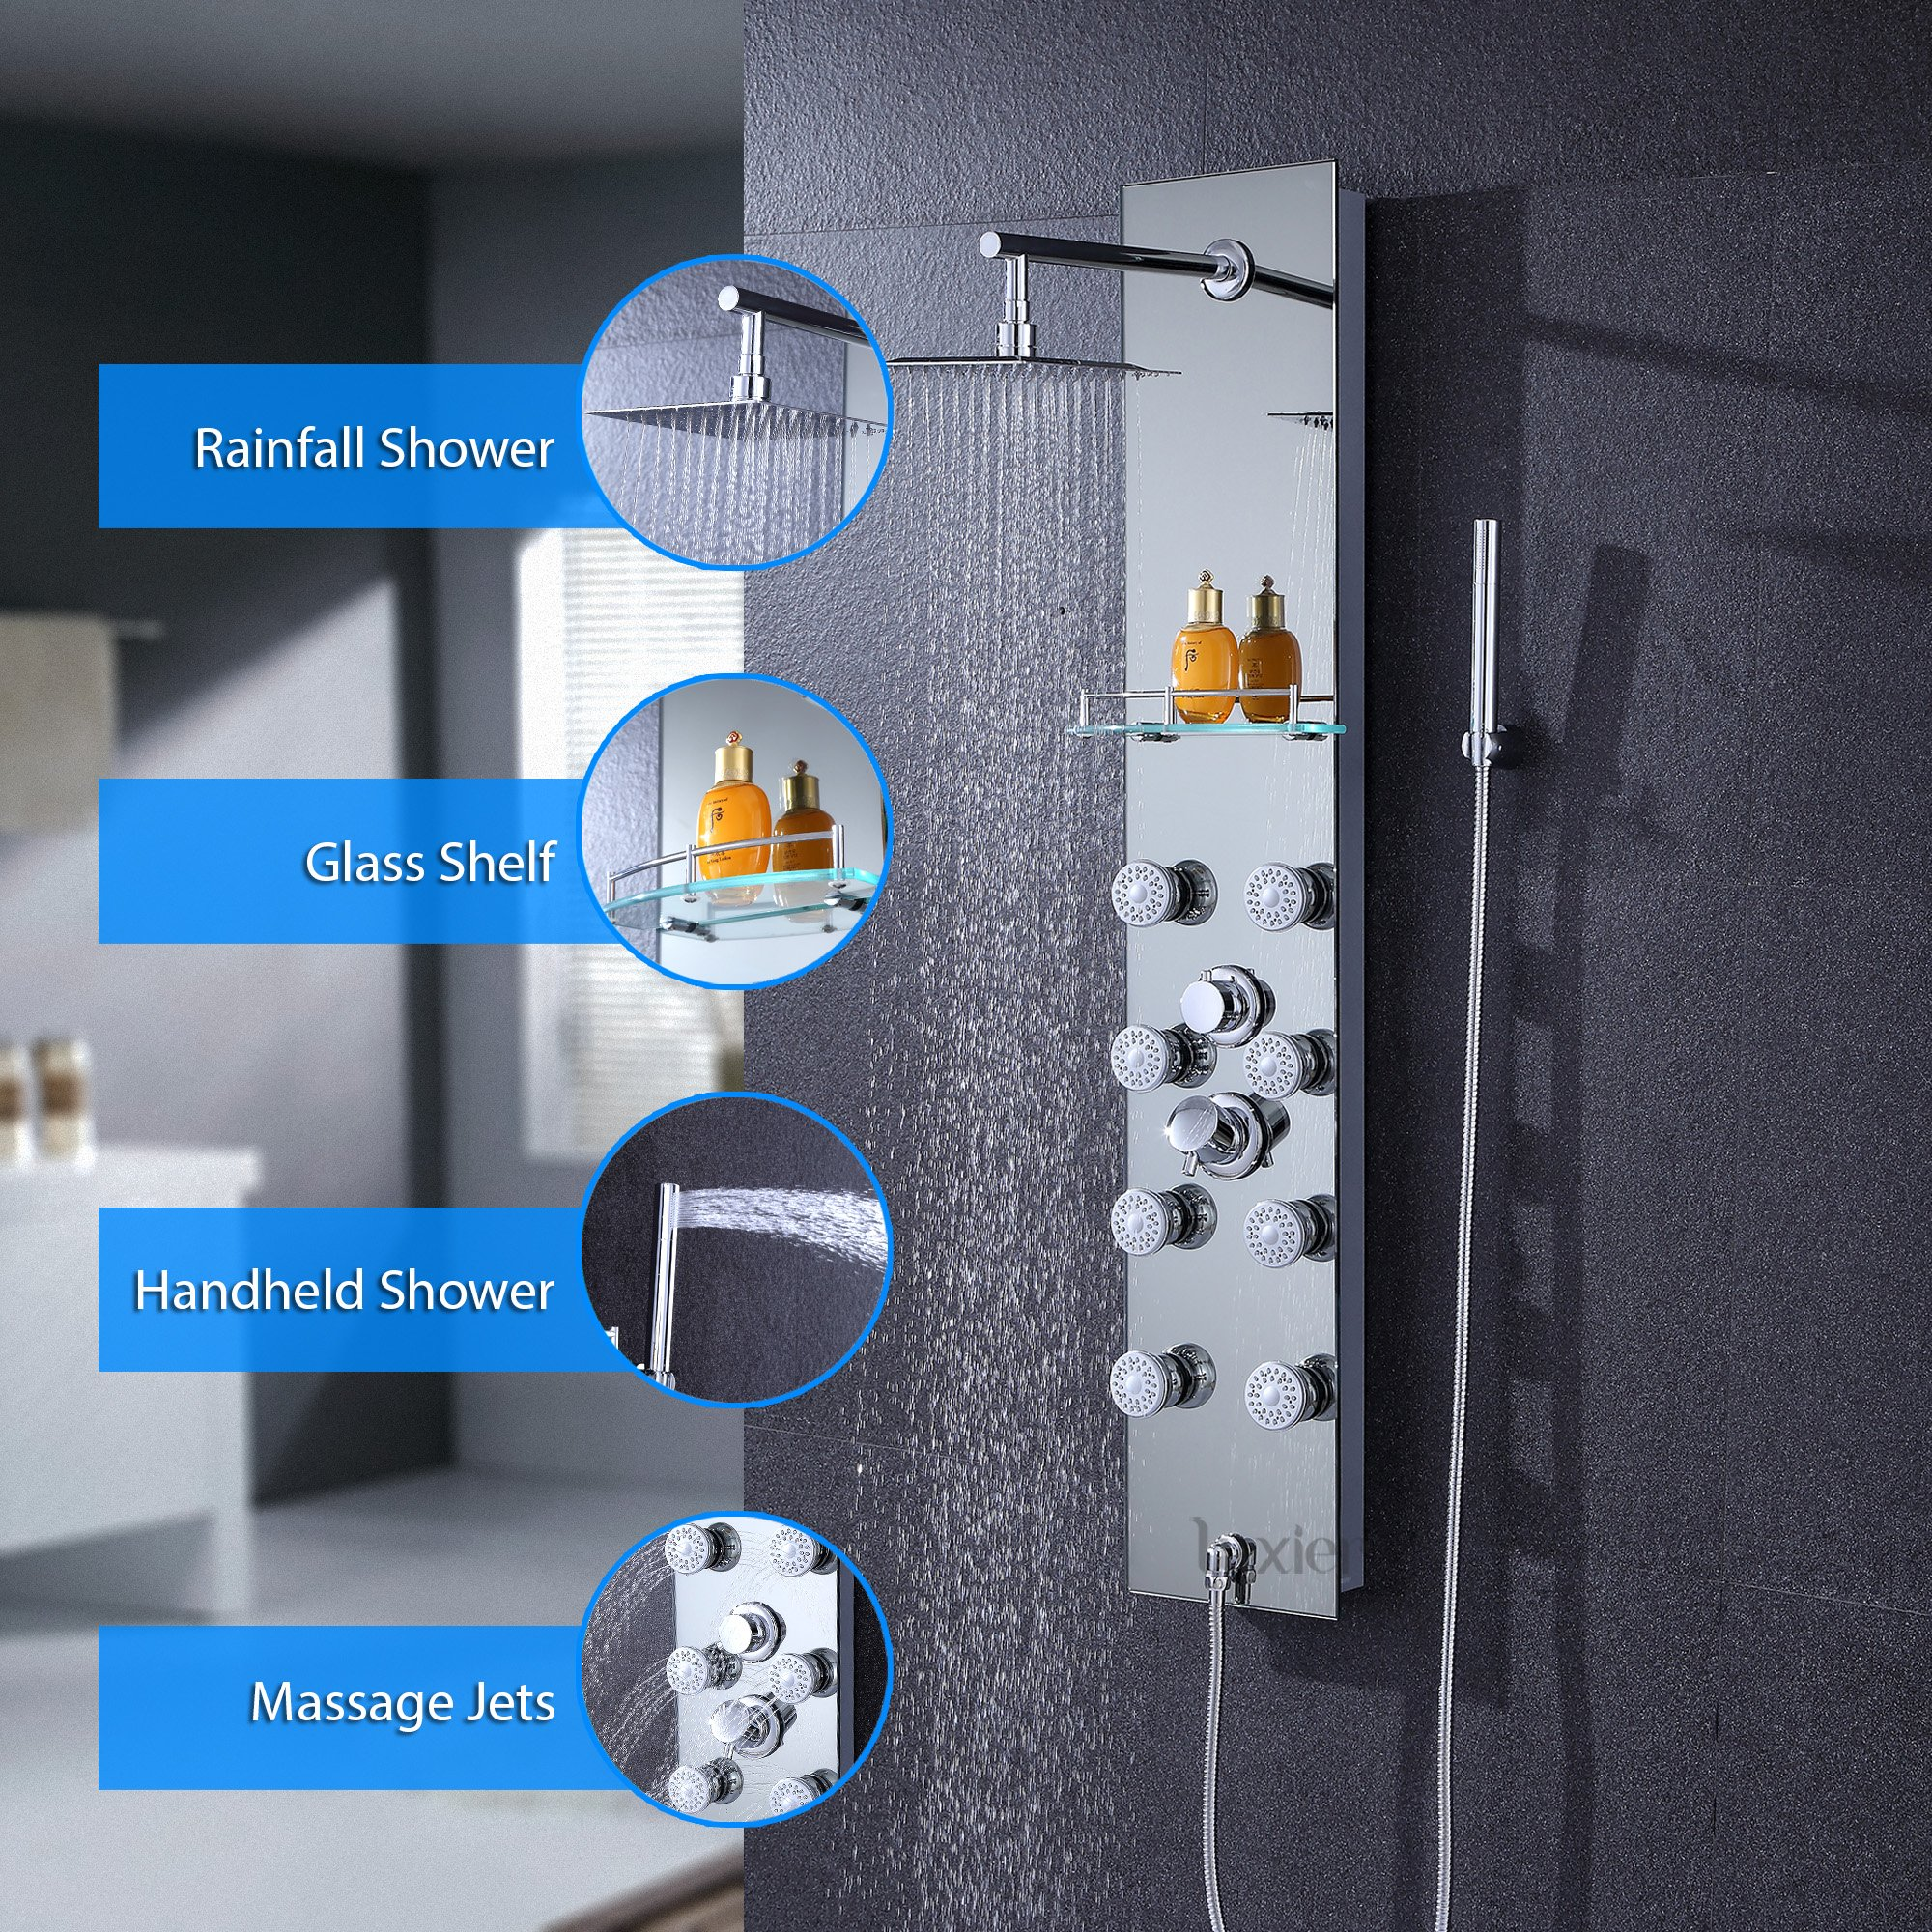 Luxier 026-GS-SLR 51'' Aluminum Safety Silver Tempered Glass Rainfall Shower Panel Rain Massage System Faucet with Jets & Hand Shower